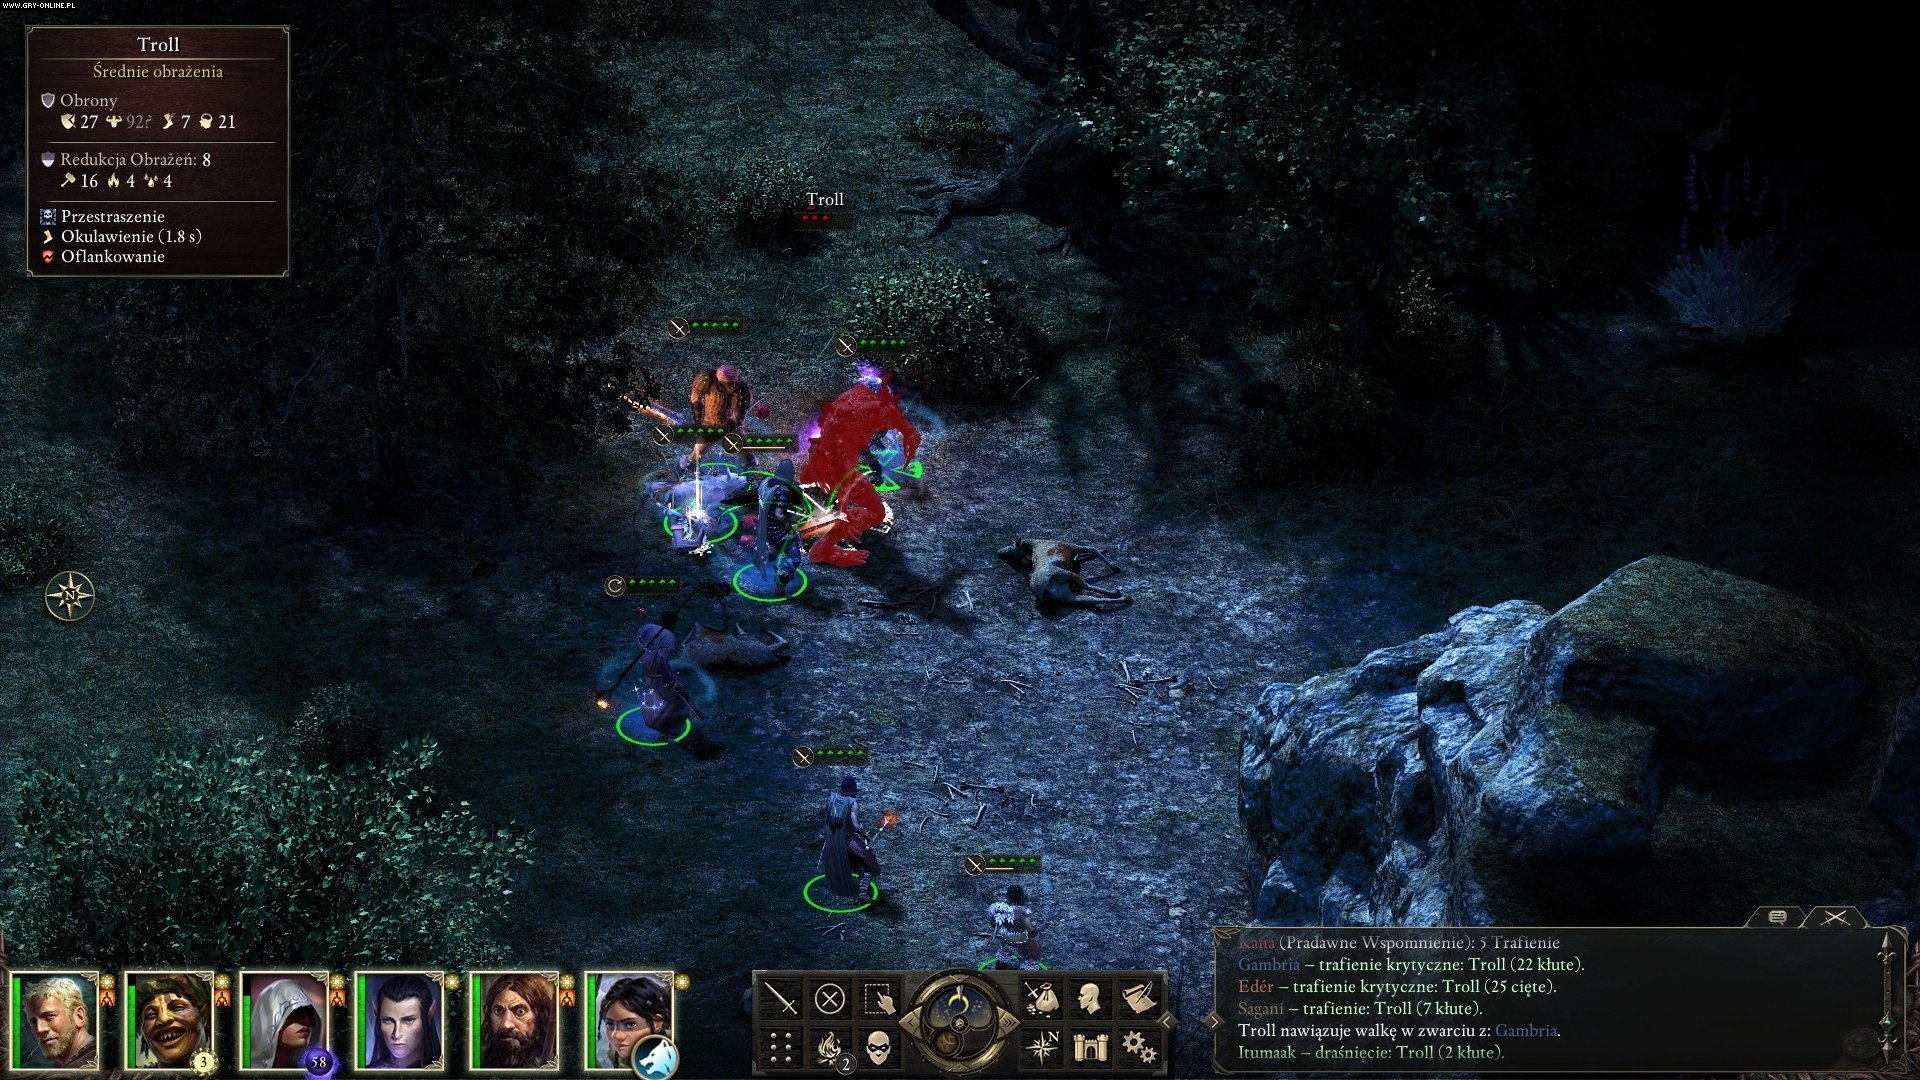 Pillars of Eternity PC Games Image 3/89, Obsidian Entertainment, Paradox Interactive